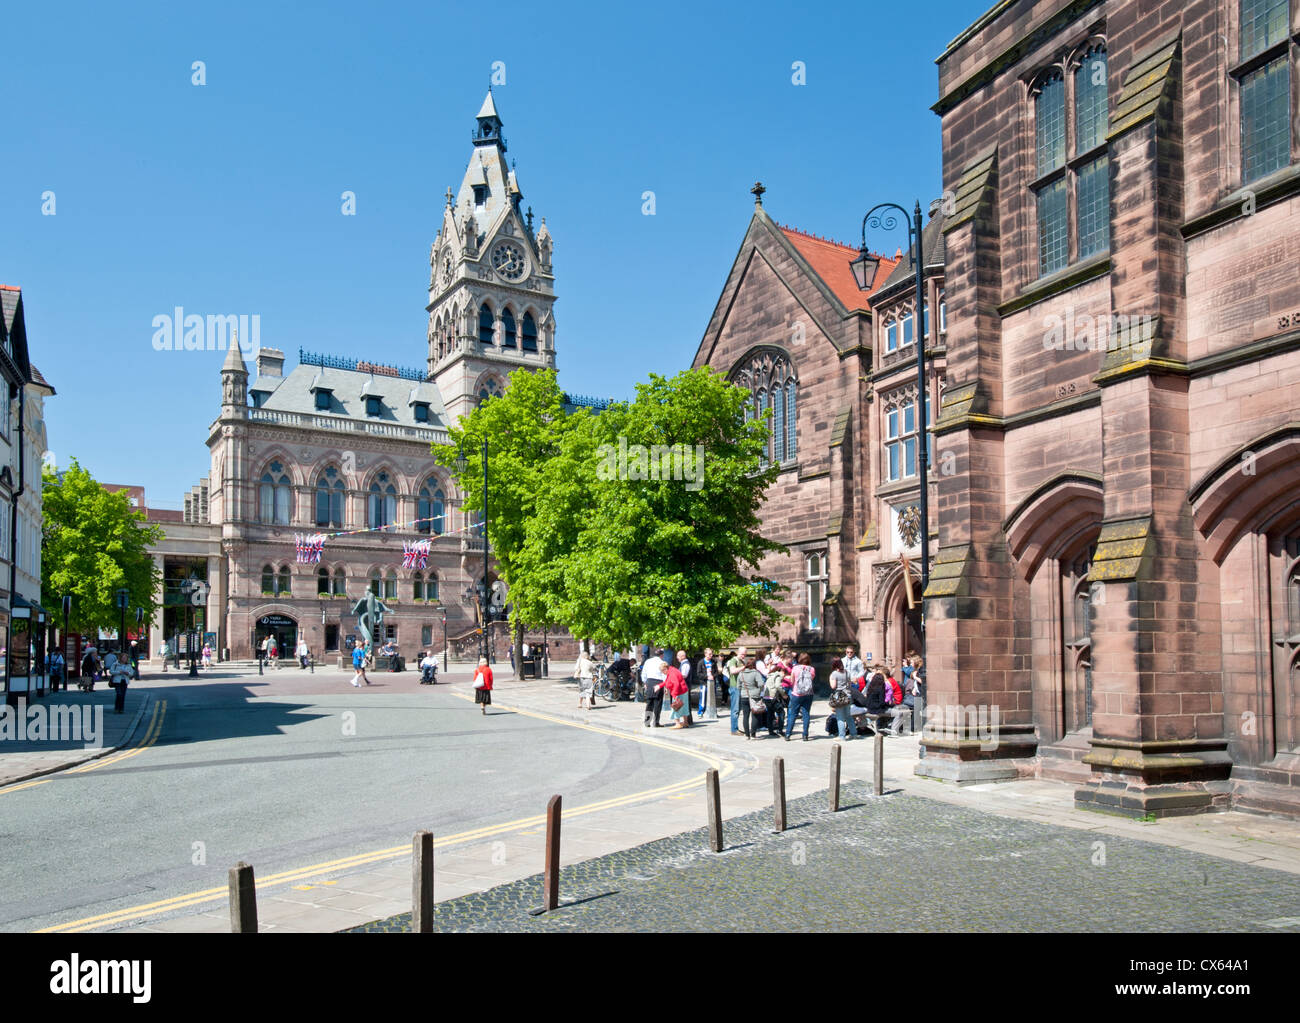 Chester Town Hall and St Werburgh Street, Chester, Cheshire, England, UK - Stock Image